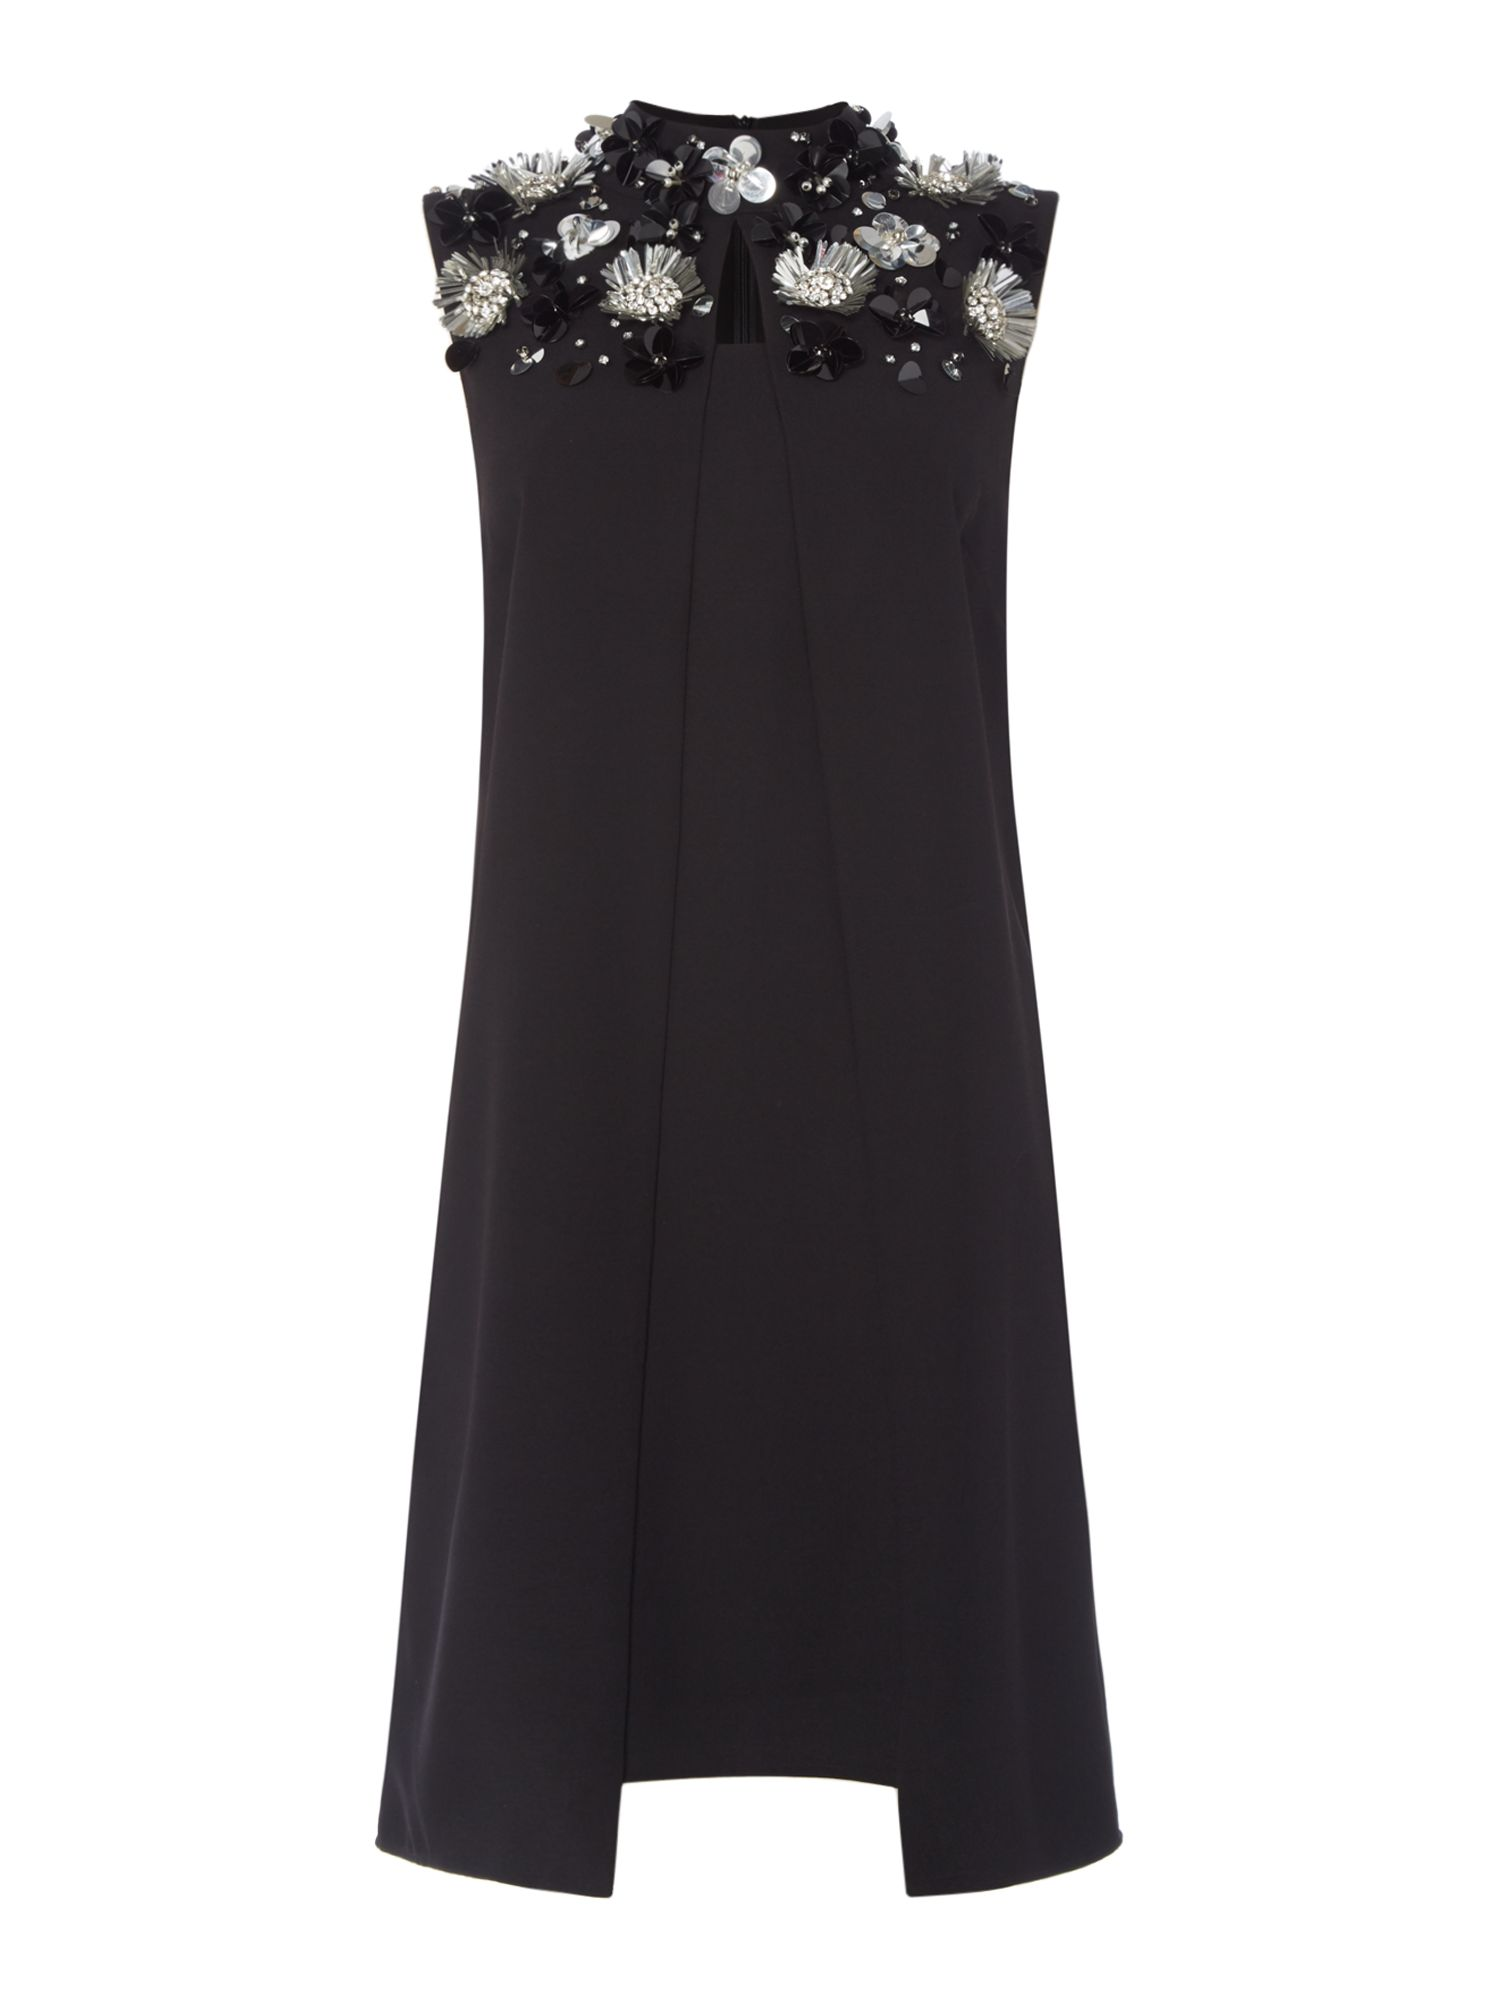 ISSA Mila Embellished Dress, Black